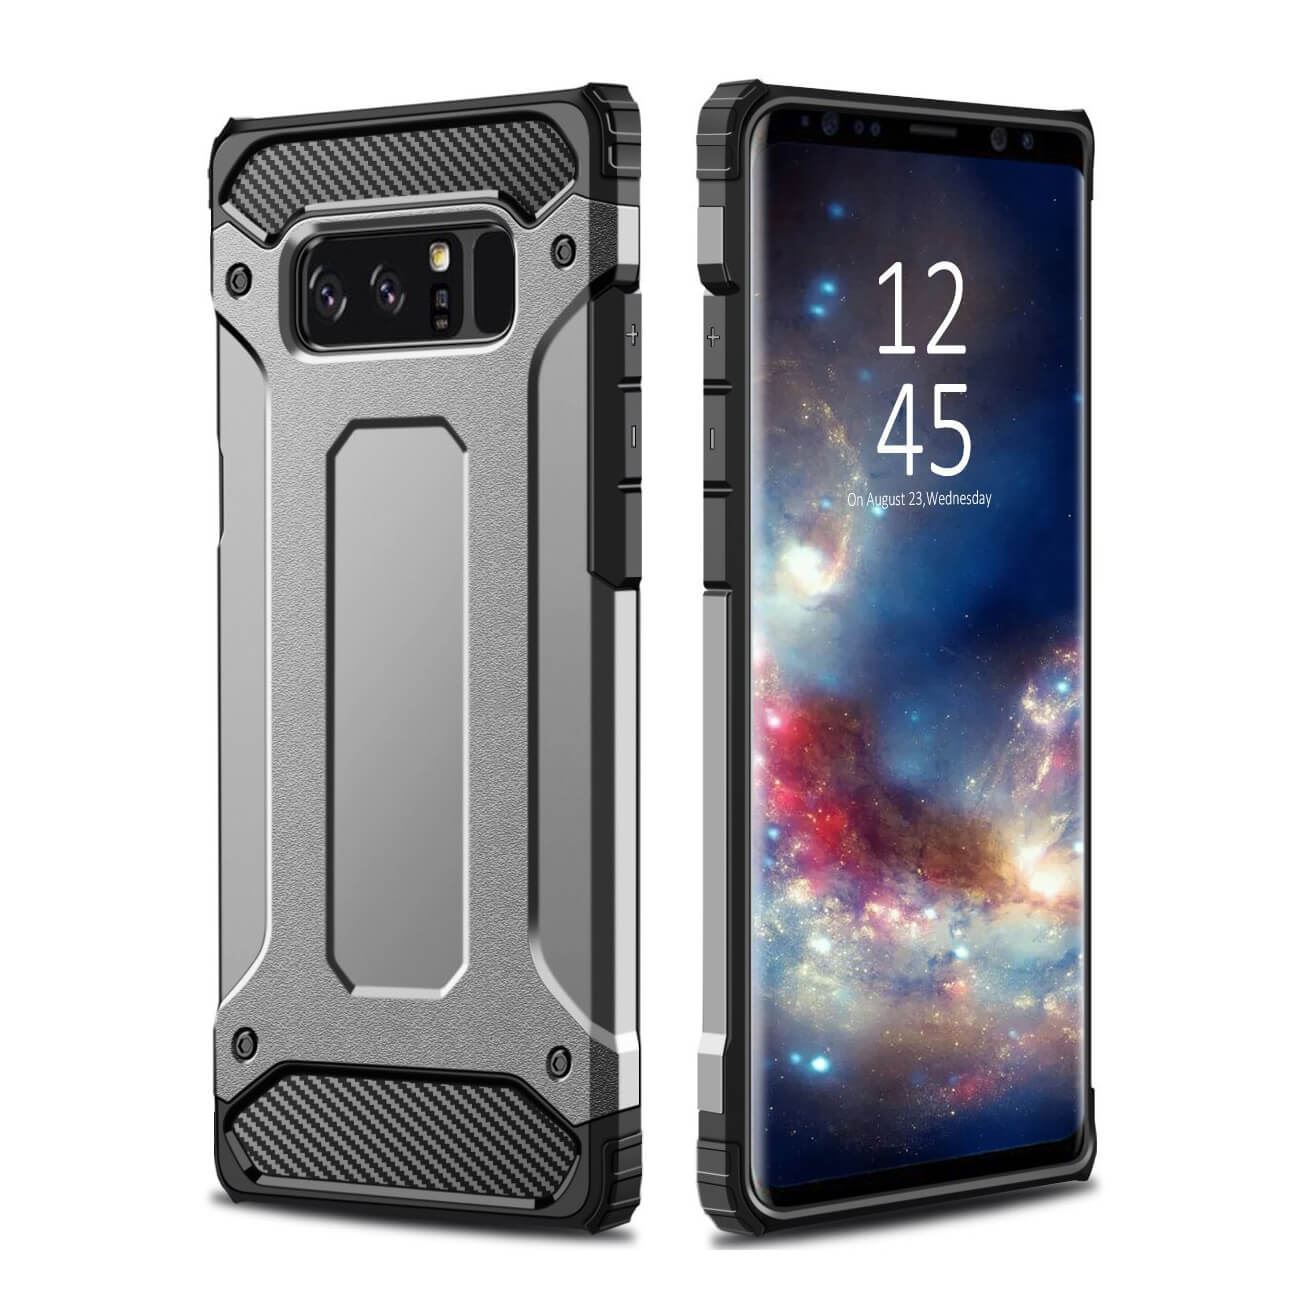 Hybrid-Armor-Case-For-Samsung-Galaxy-S7-S8-S9-Shockproof-Rugged-Bumper-Cover thumbnail 28